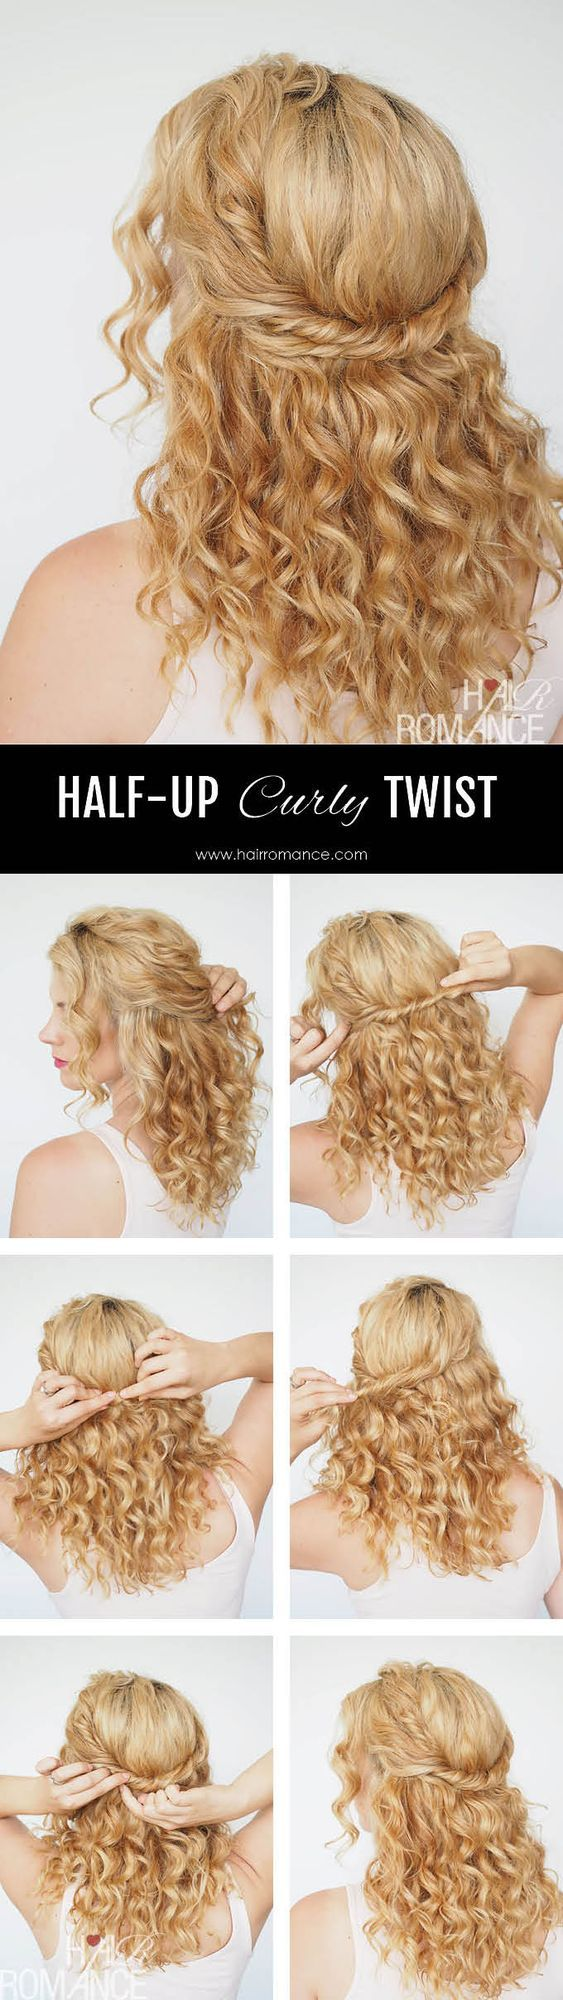 Keep it chic and simple with this half-up twist tutorial. So many hairstyle tutorials are really complicated. This tutorial is not. It's super easy and a style that anyone can do. After creating over